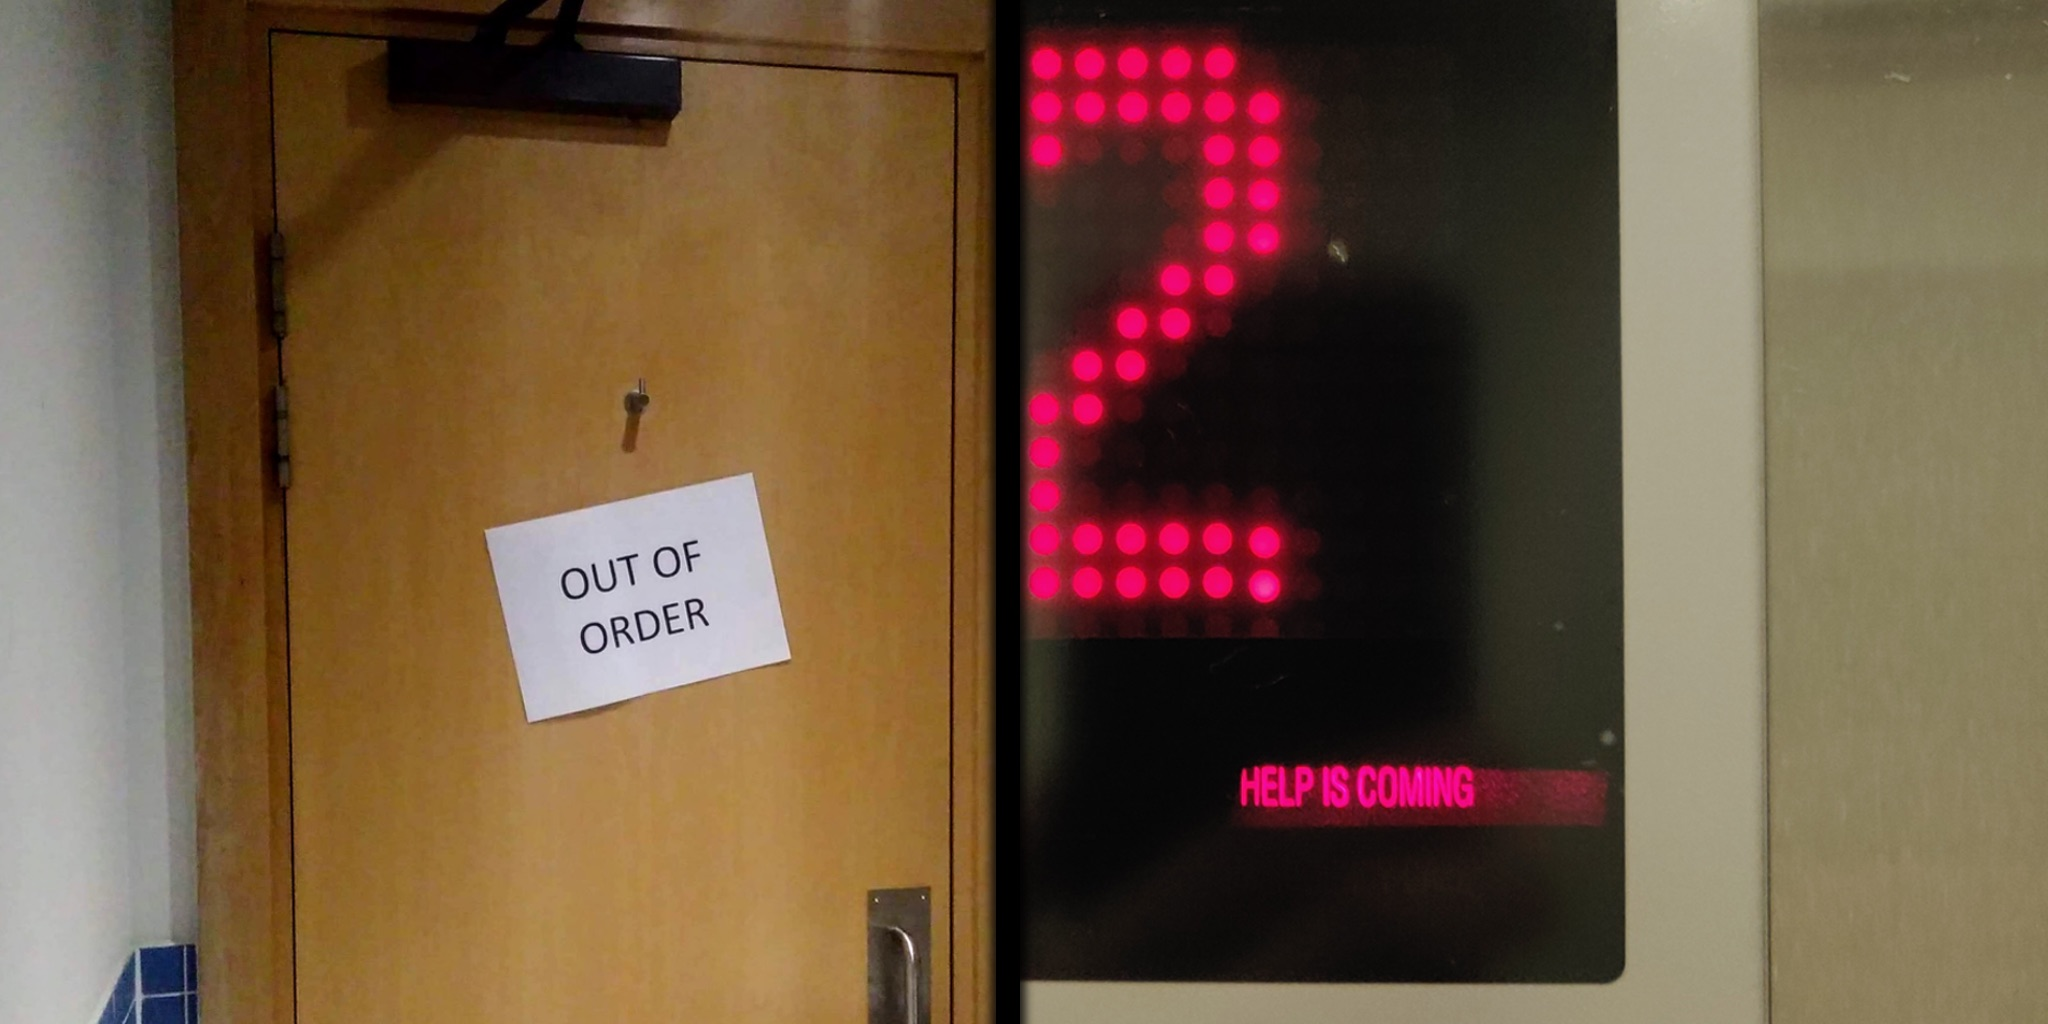 "Inside of a toilet door with sign ""Out of Order"" and lift display stating ""Help is Coming""."